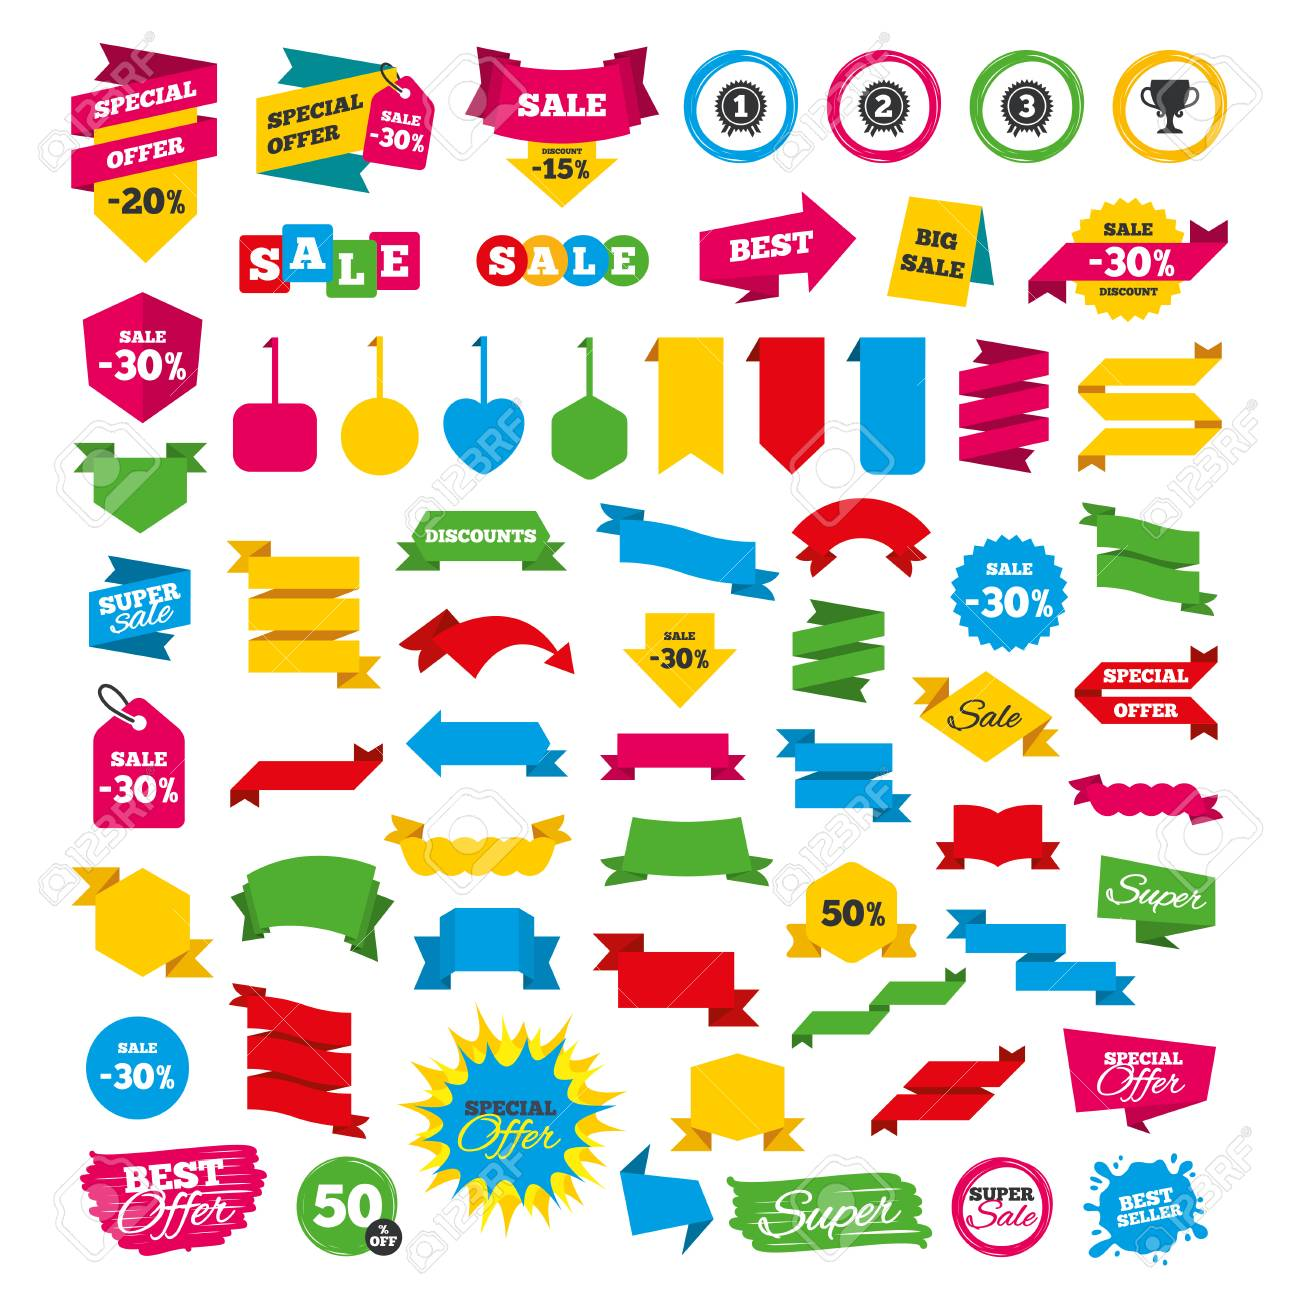 Ribbons Special Awards Clipart | Free Images at Clker.com - vector clip art  online, royalty free & public domain